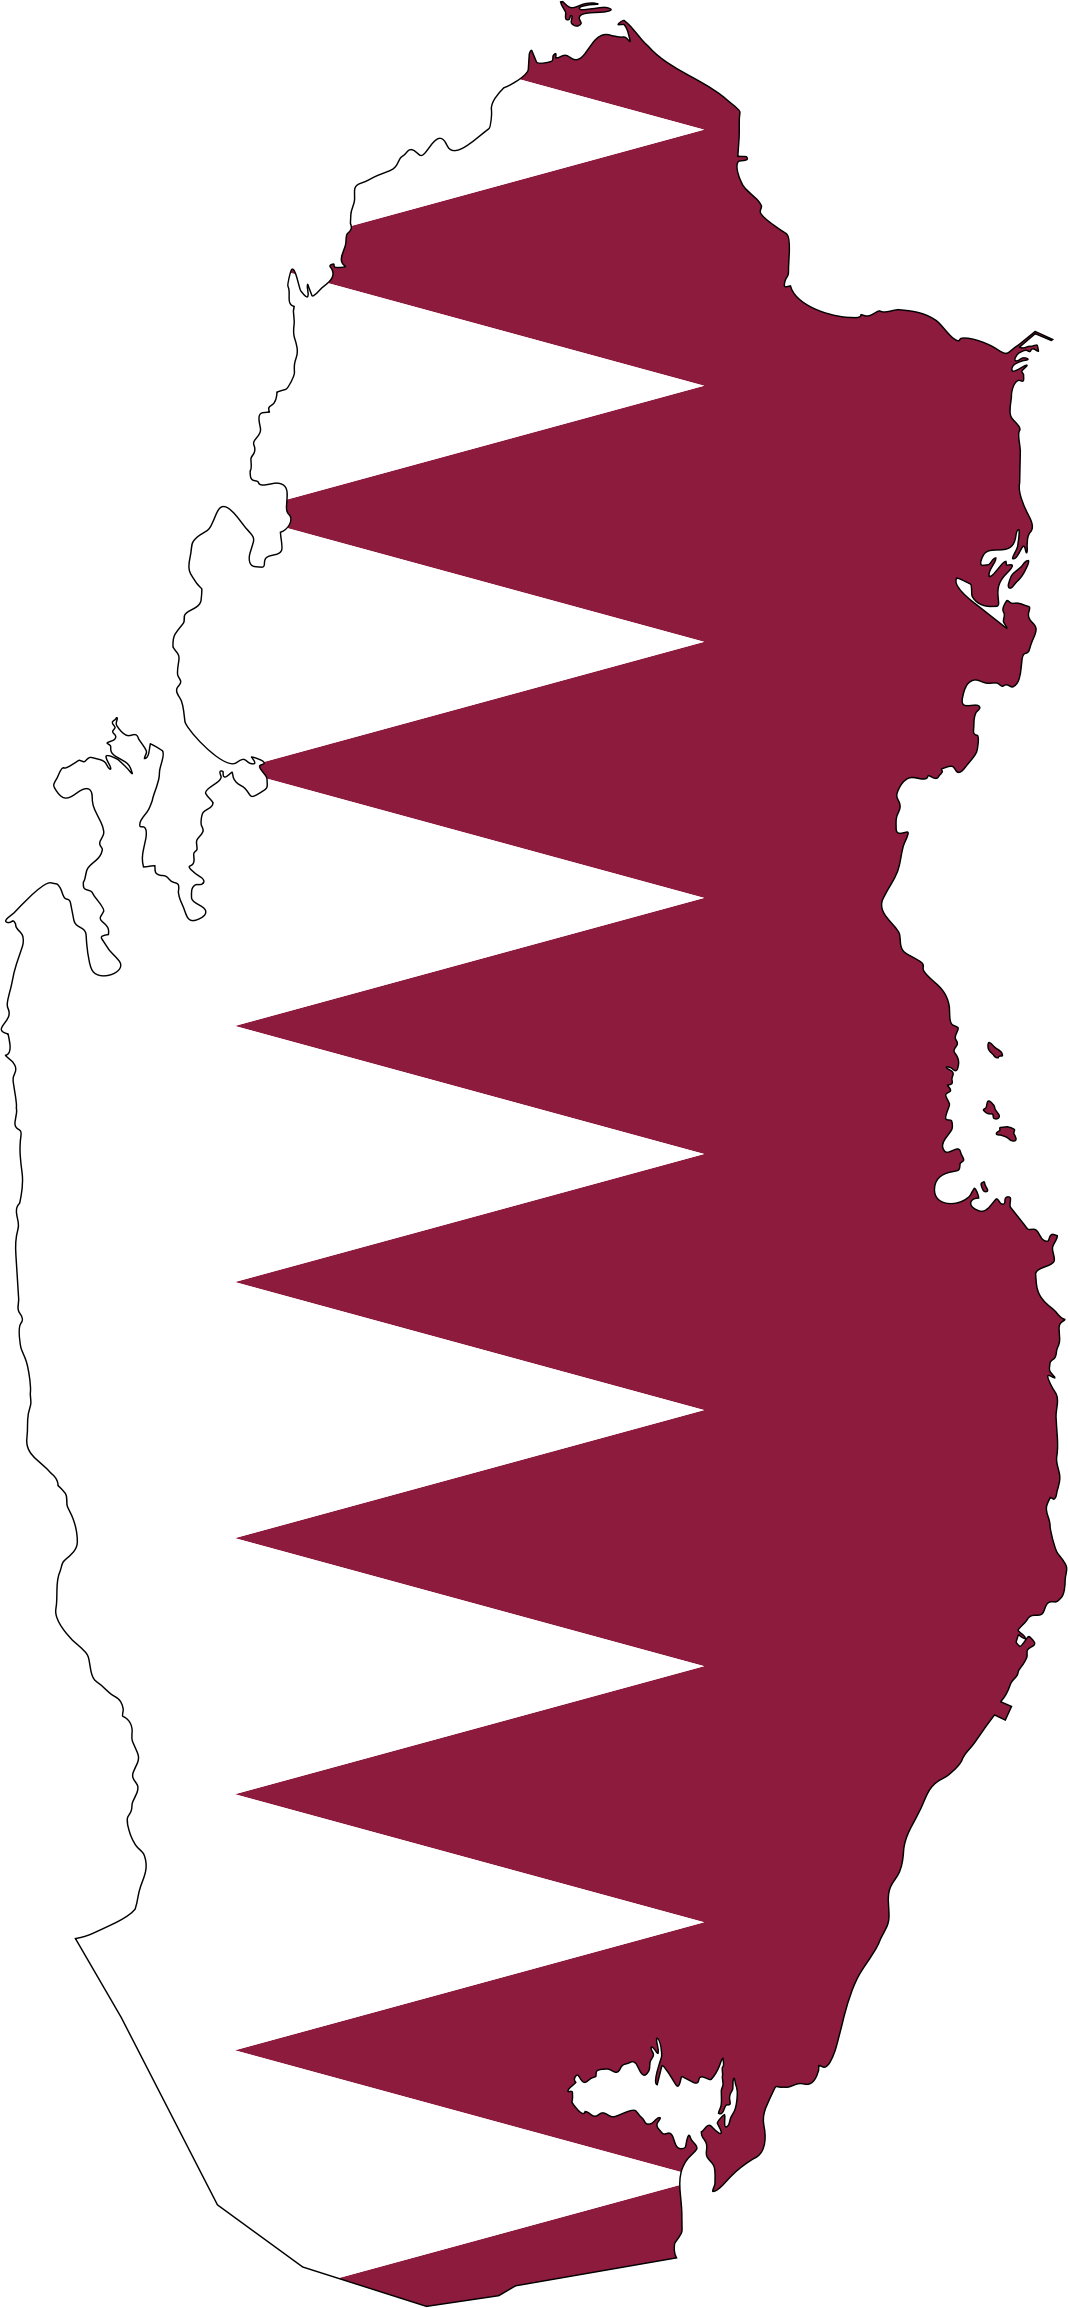 Qatar Map Flag With Stroke by GDJ